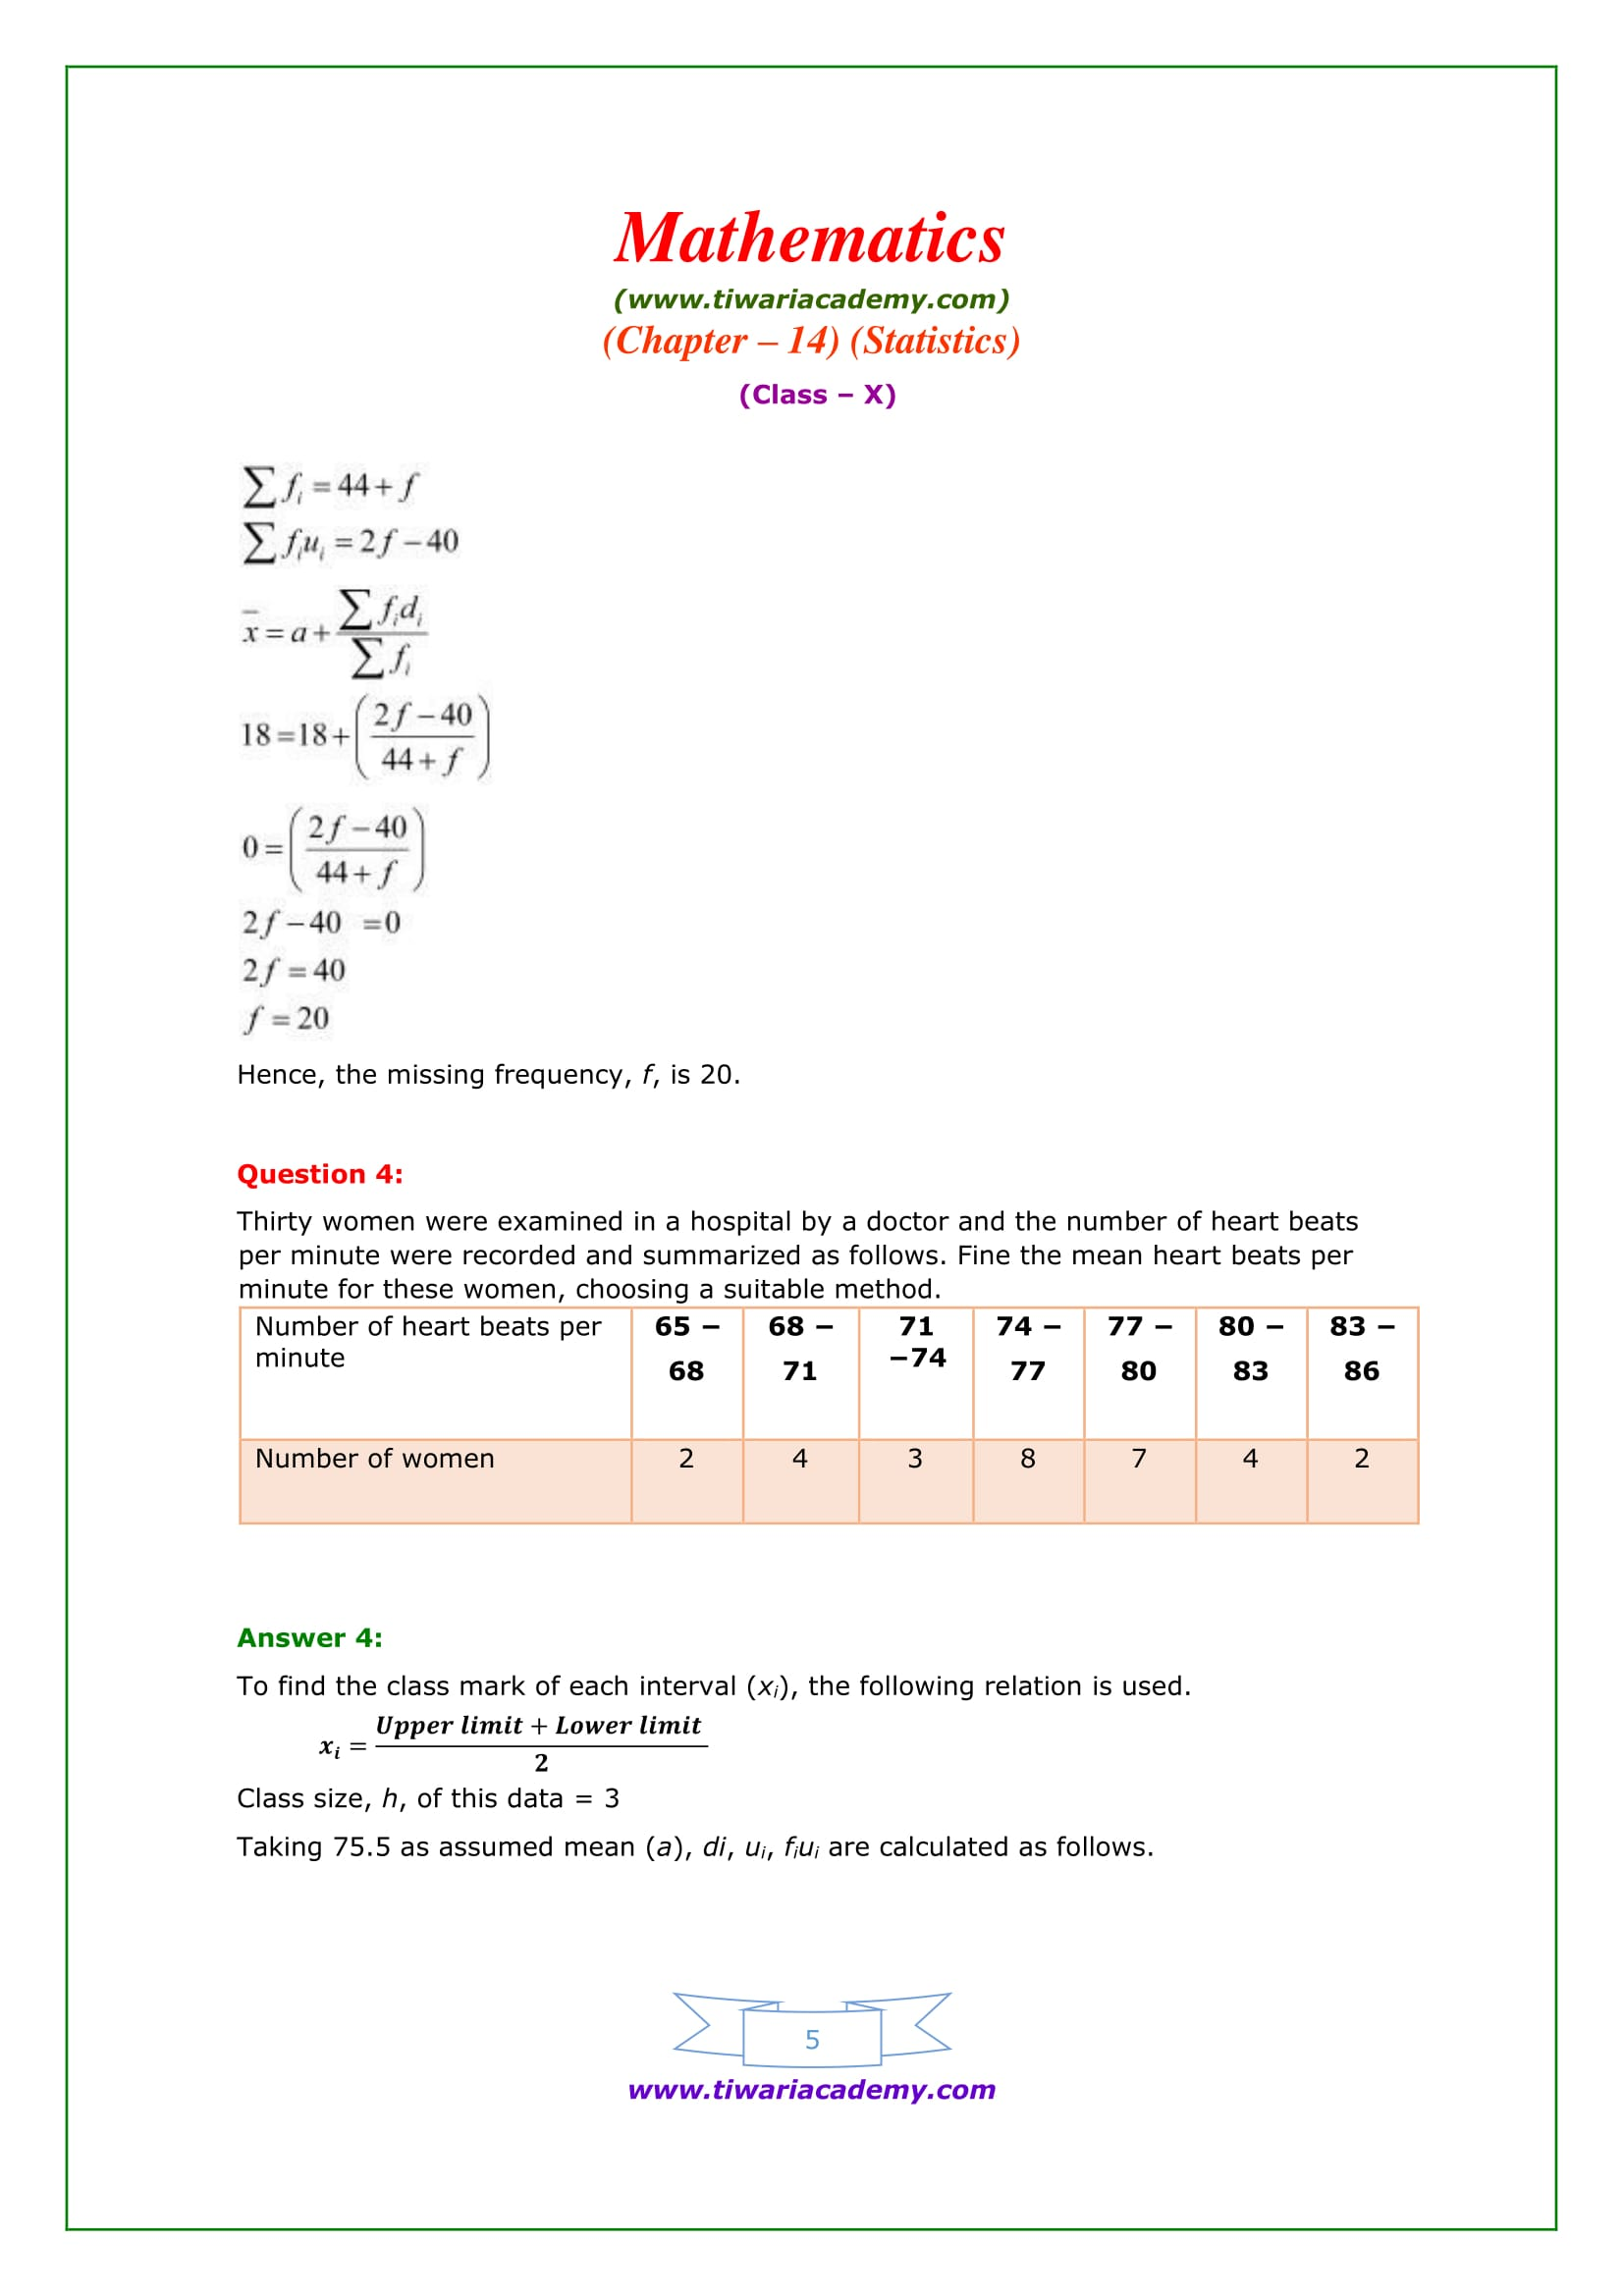 NCERT Solutions for Class 10 Maths Chapter 14 Exercise 14.1 Question 4